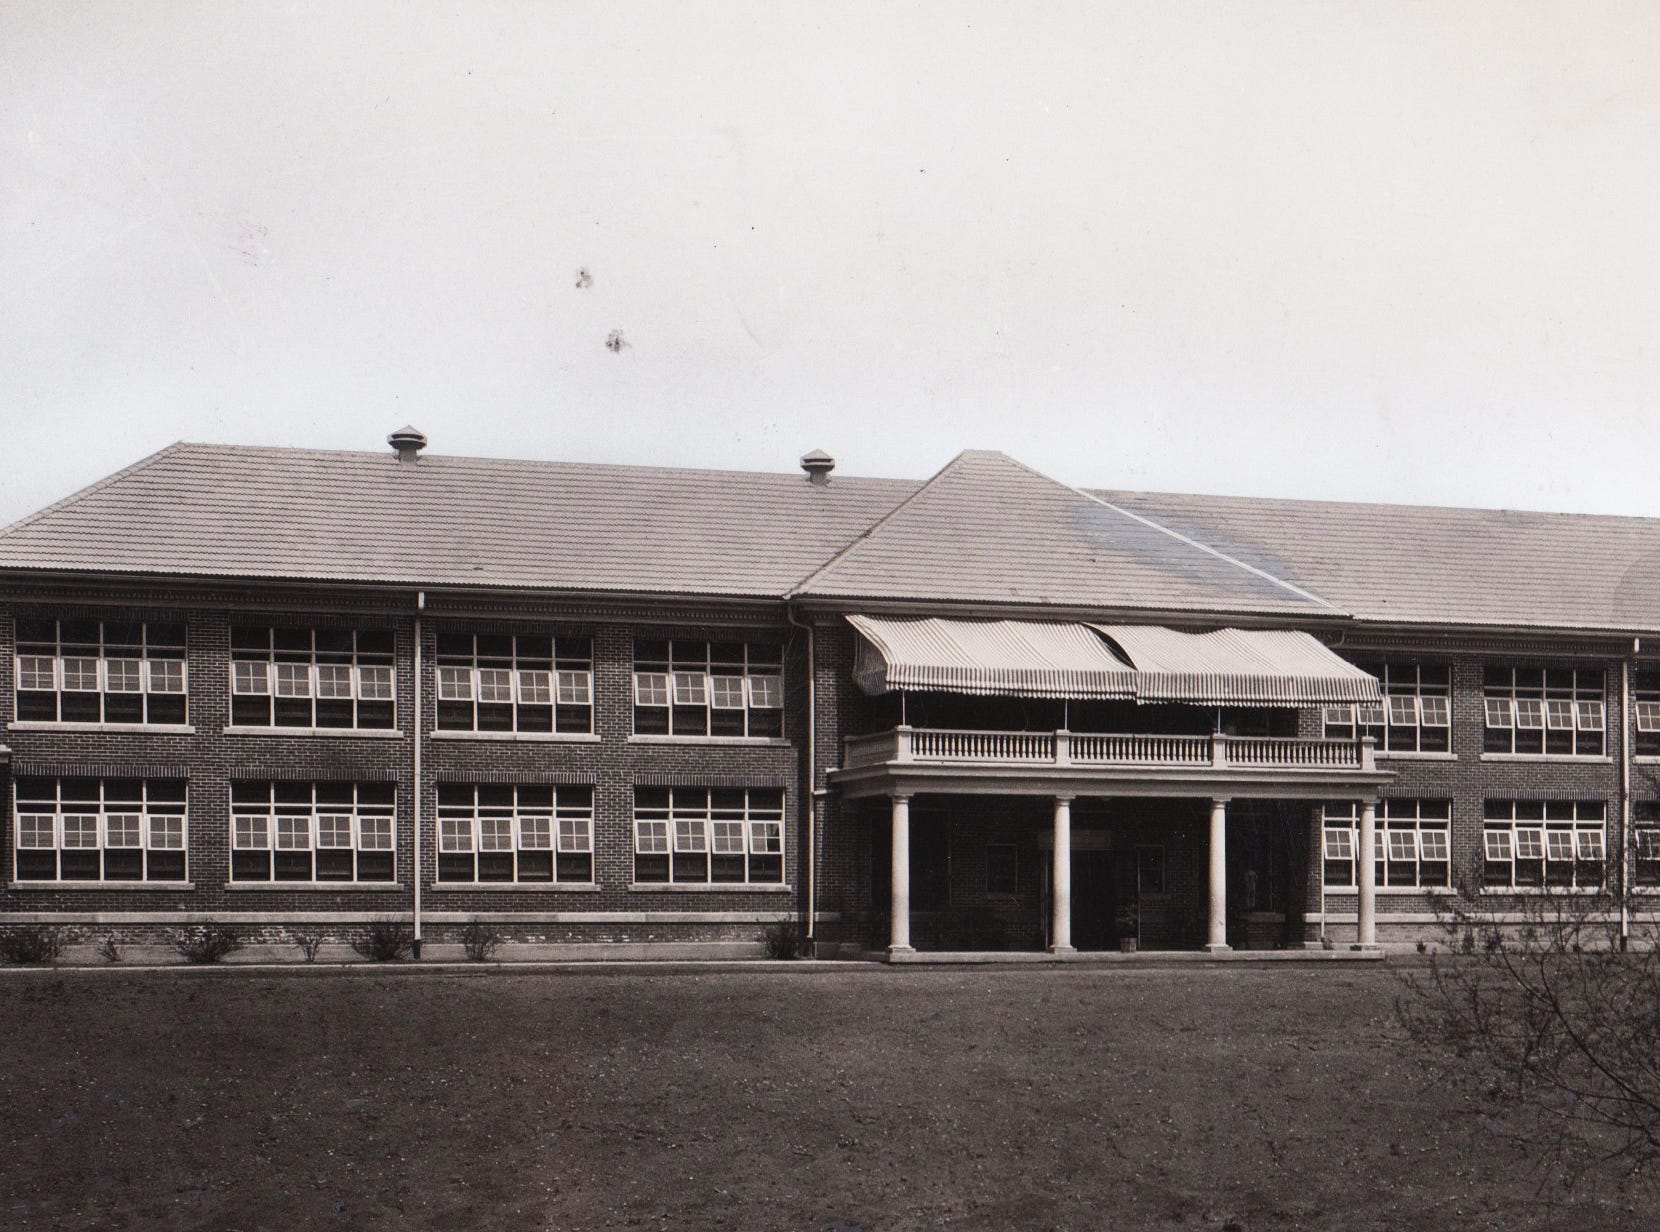 Children's building at the Sunnyside Sanatorium in 1924. In 1917, City Hospital (later Wishard and now Eskenazi) opened the Sunnyside Sanitarium near Oaklandon to handle tuberculosis patients.